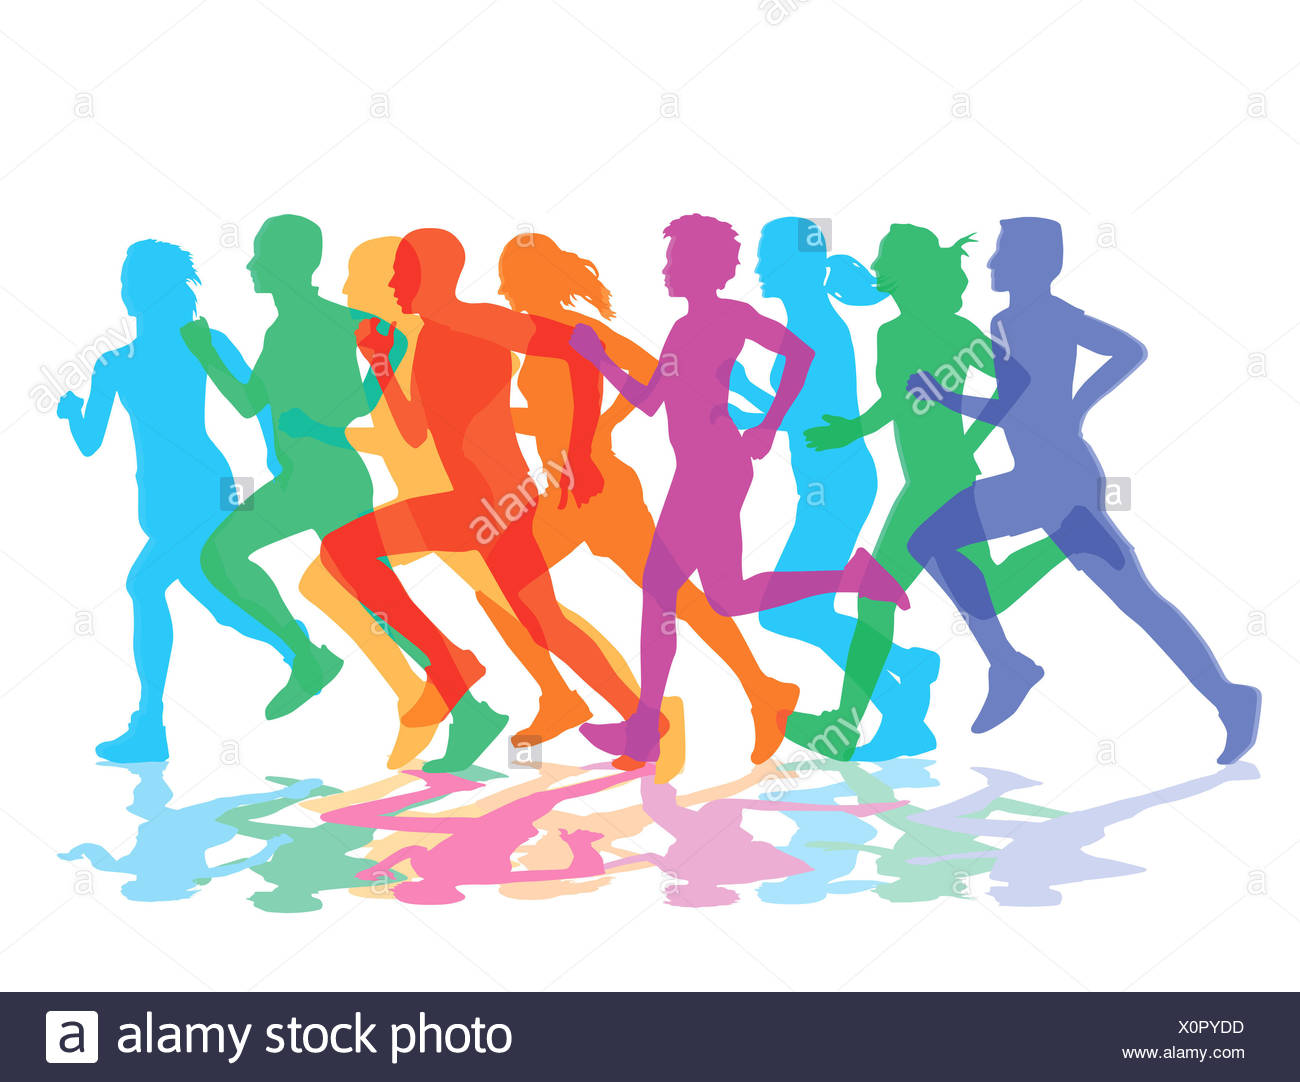 A group of runners - Stock Image